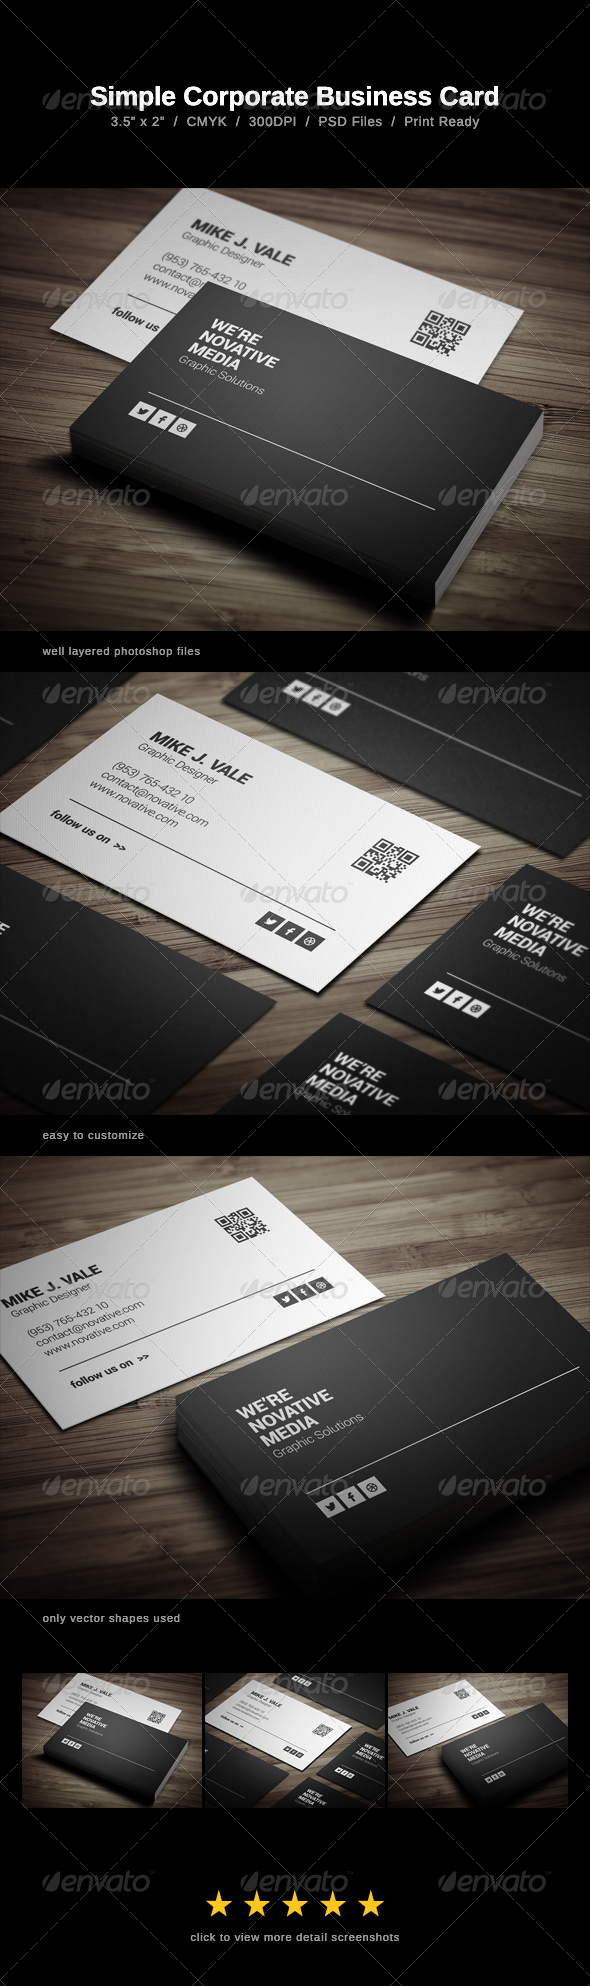 GraphicRiver Simple Corporate Business Card 6468648